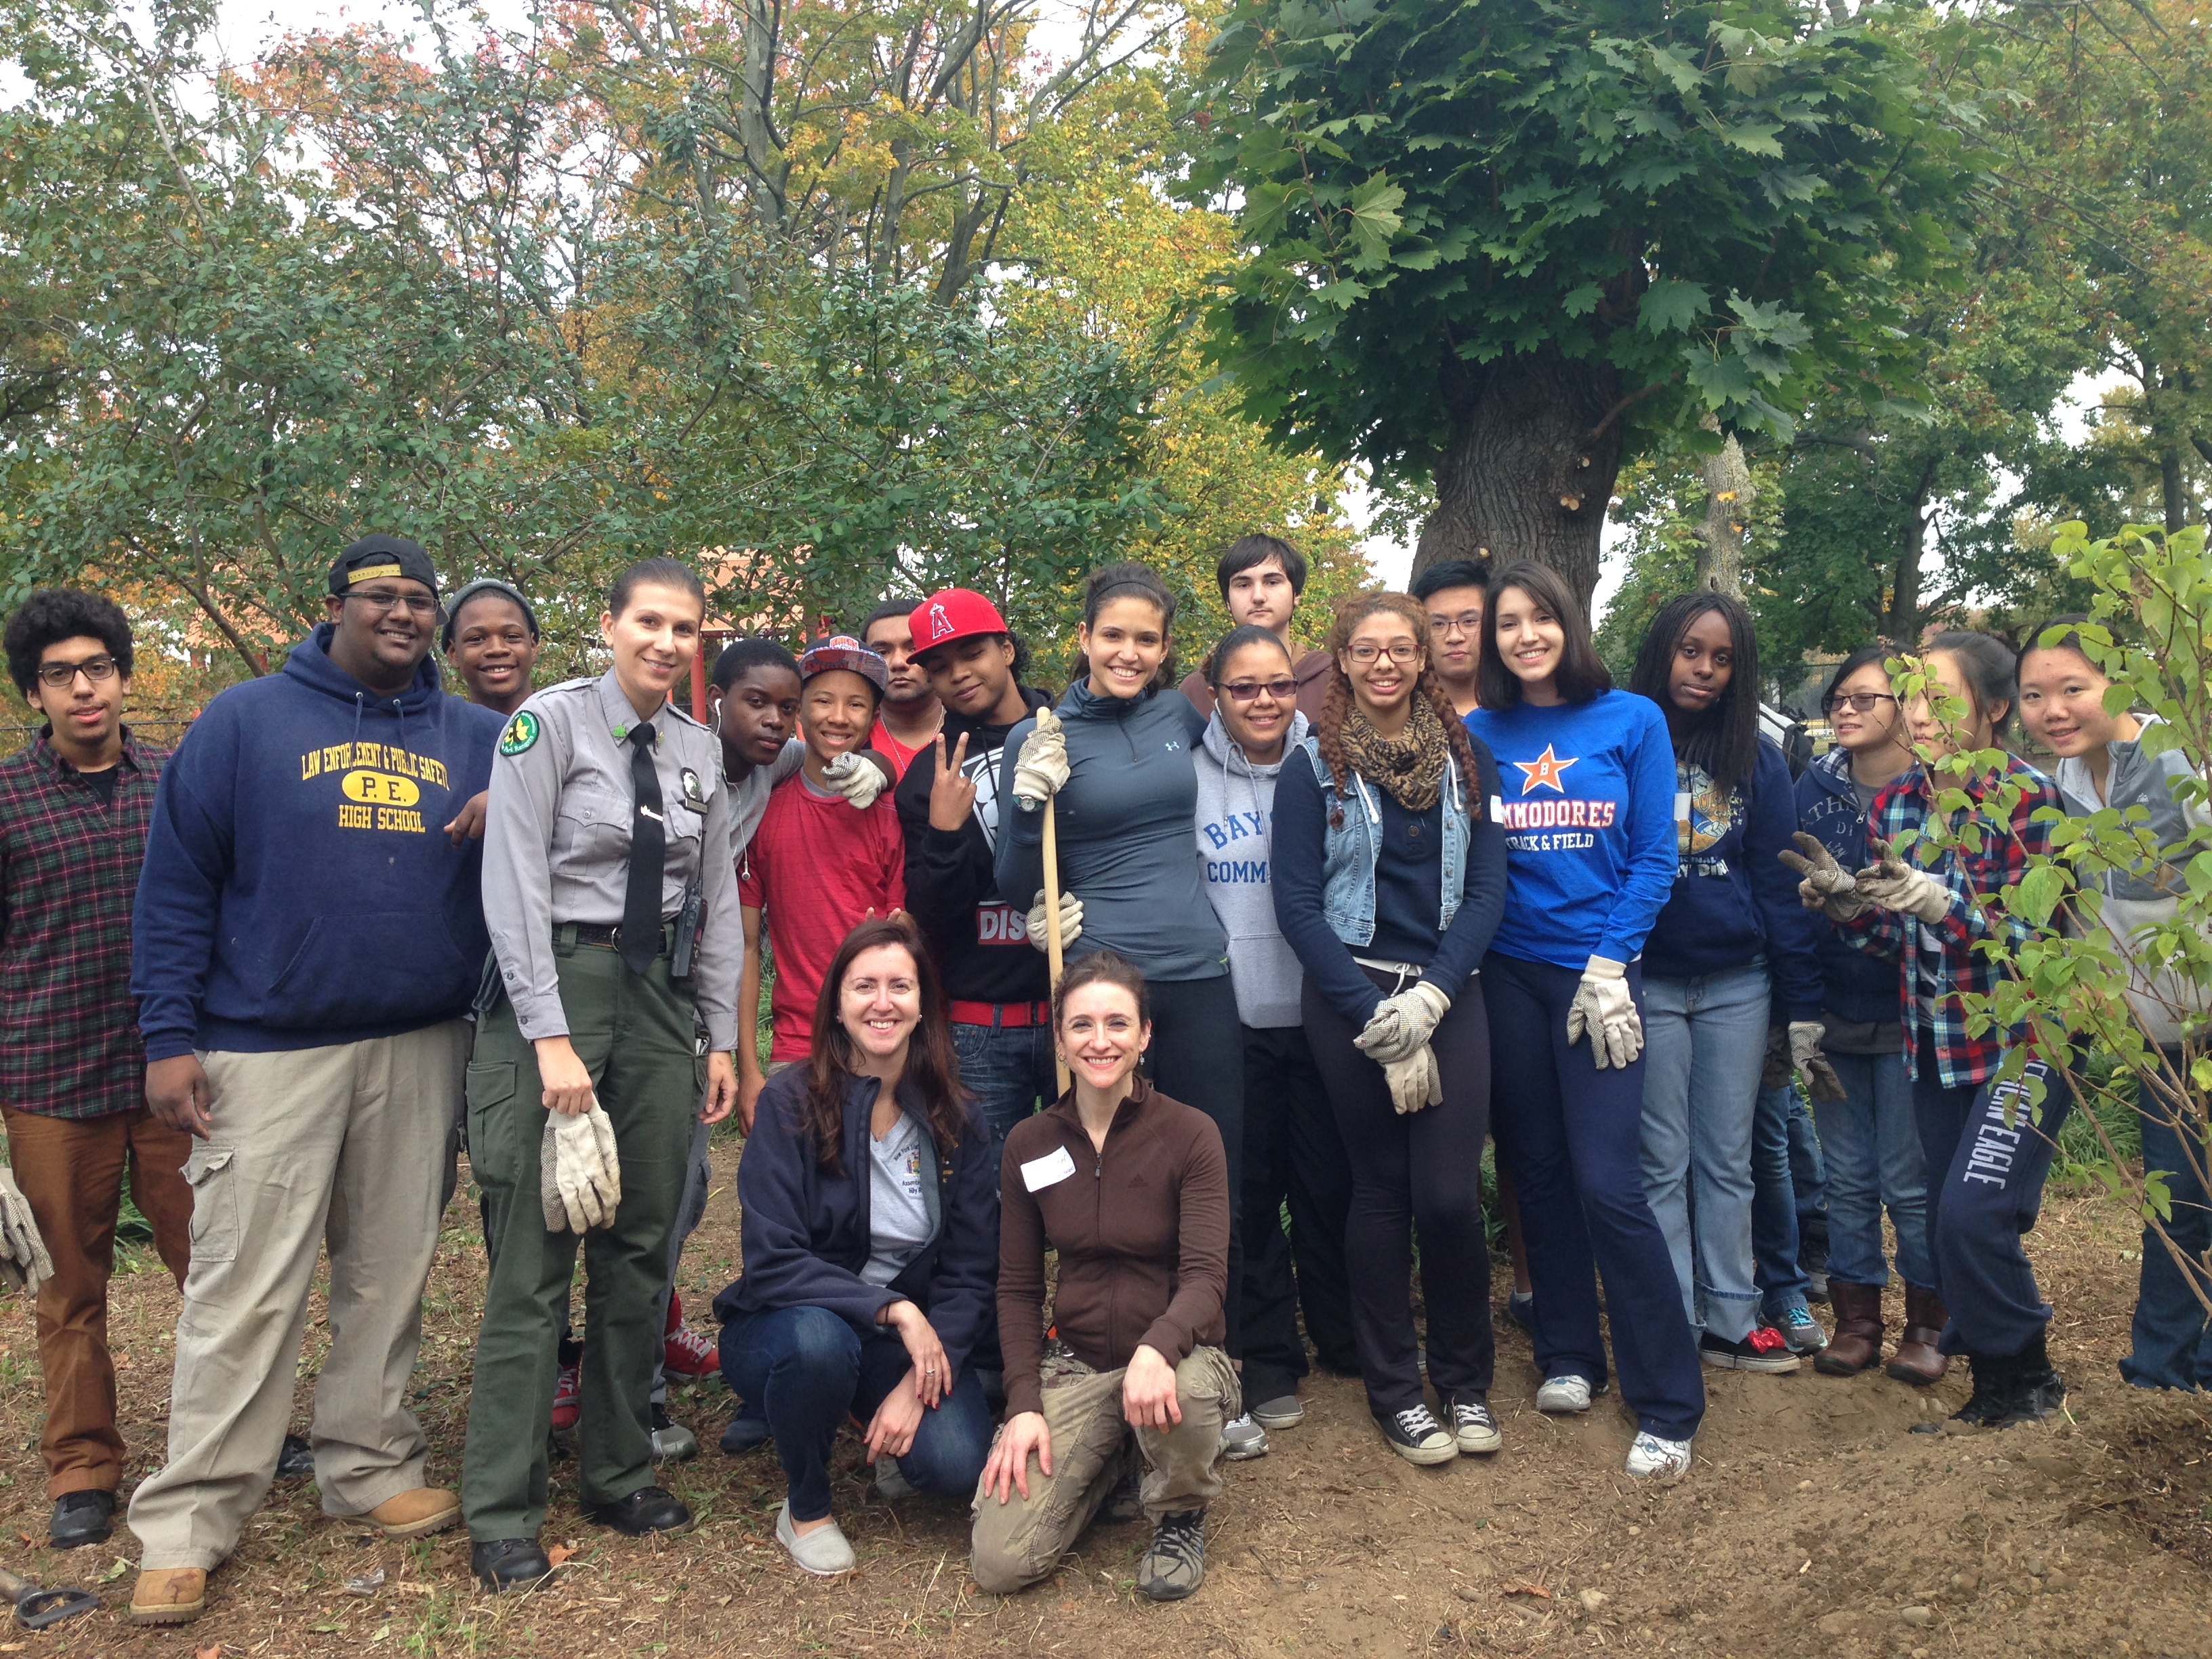 Assemblywoman Nily Rozic and local volunteers cleaned and beatified Cunningham Park in Fresh Meadows.